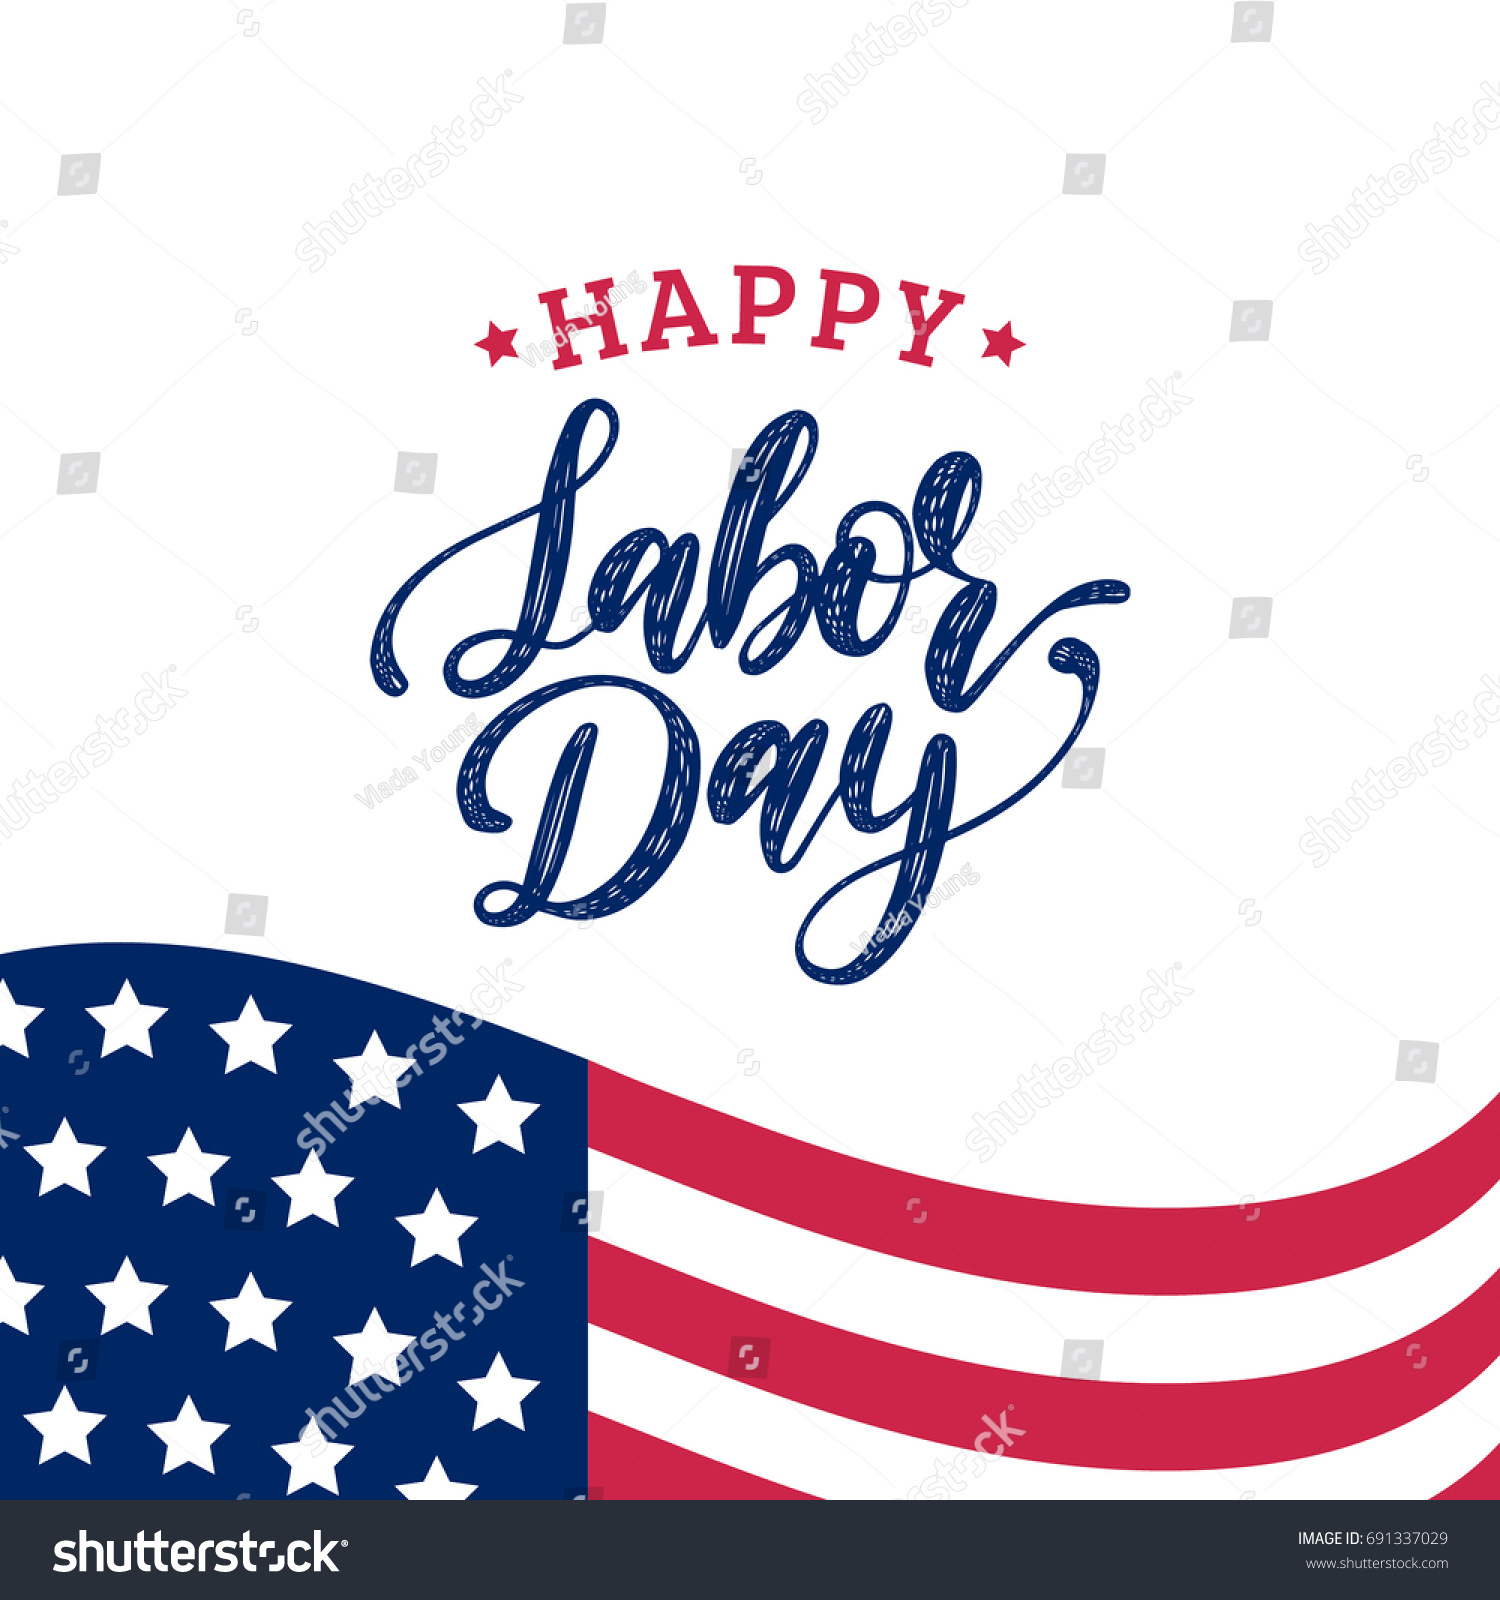 Vector labor day greeting invitation card stock vector 691337029 vector labor day greeting or invitation card national american holiday illustration with usa flag kristyandbryce Images